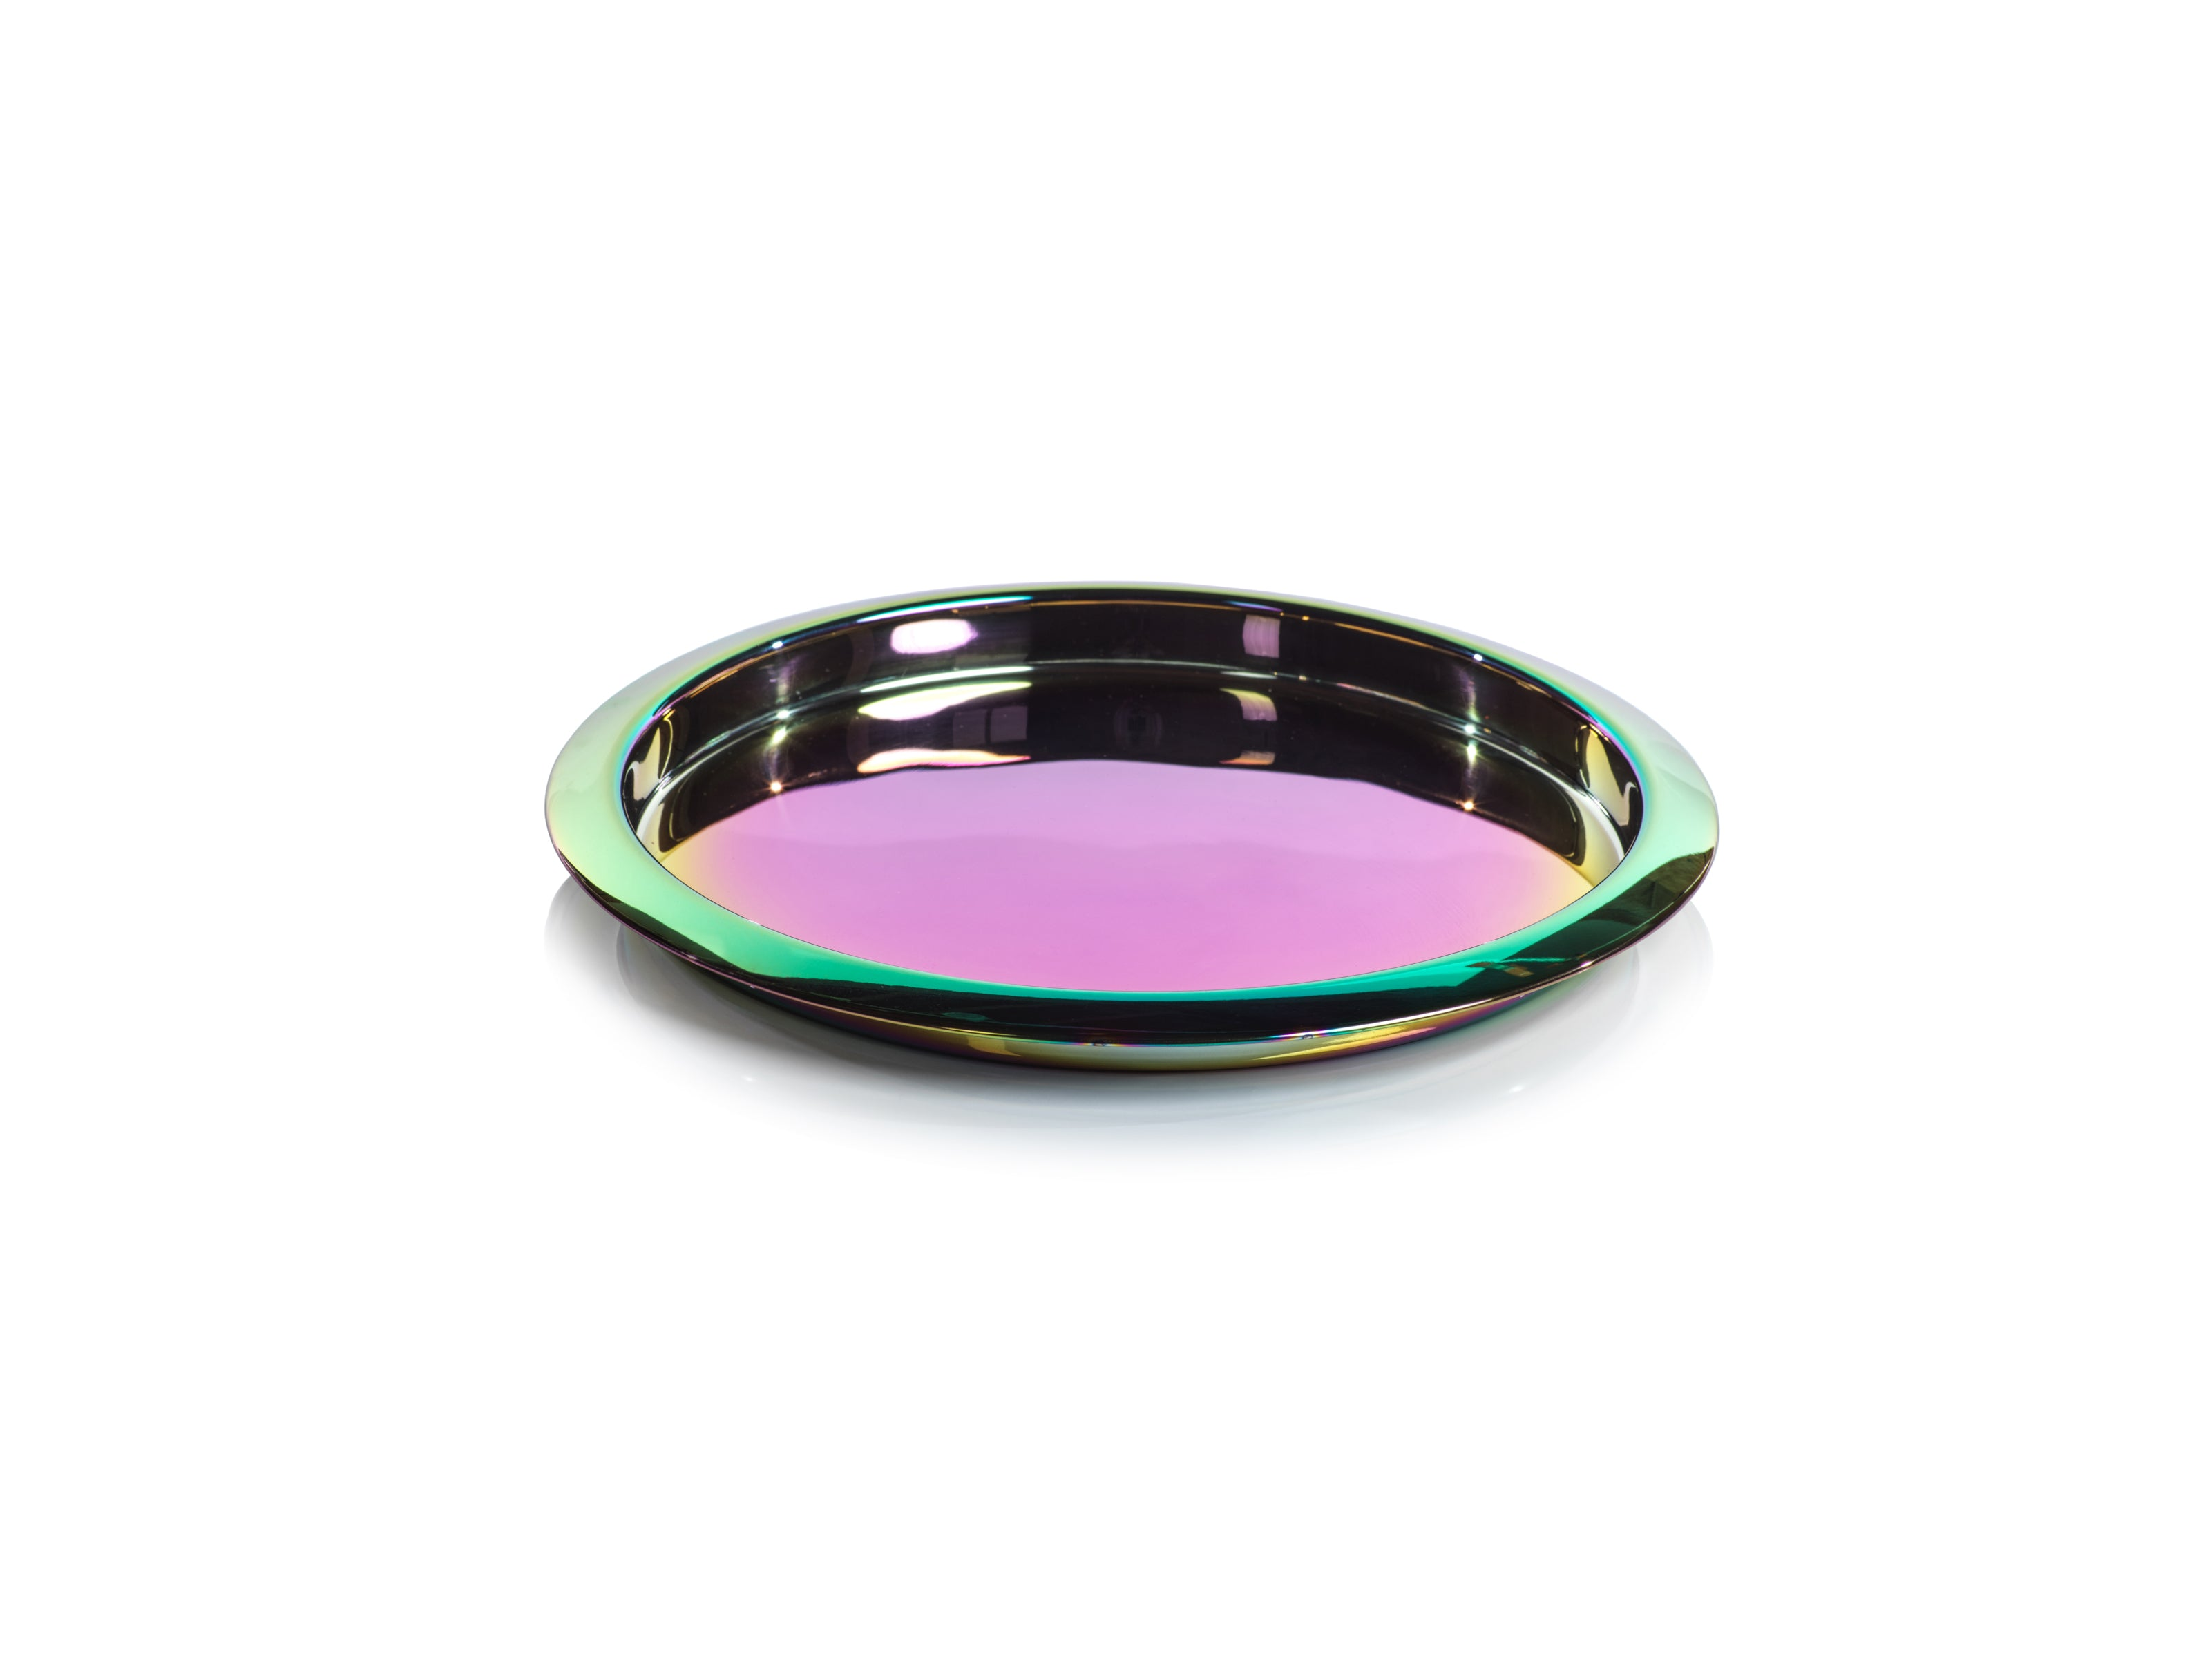 Stainless Steel Rainbow Round Serving Tray - CARLYLE AVENUE